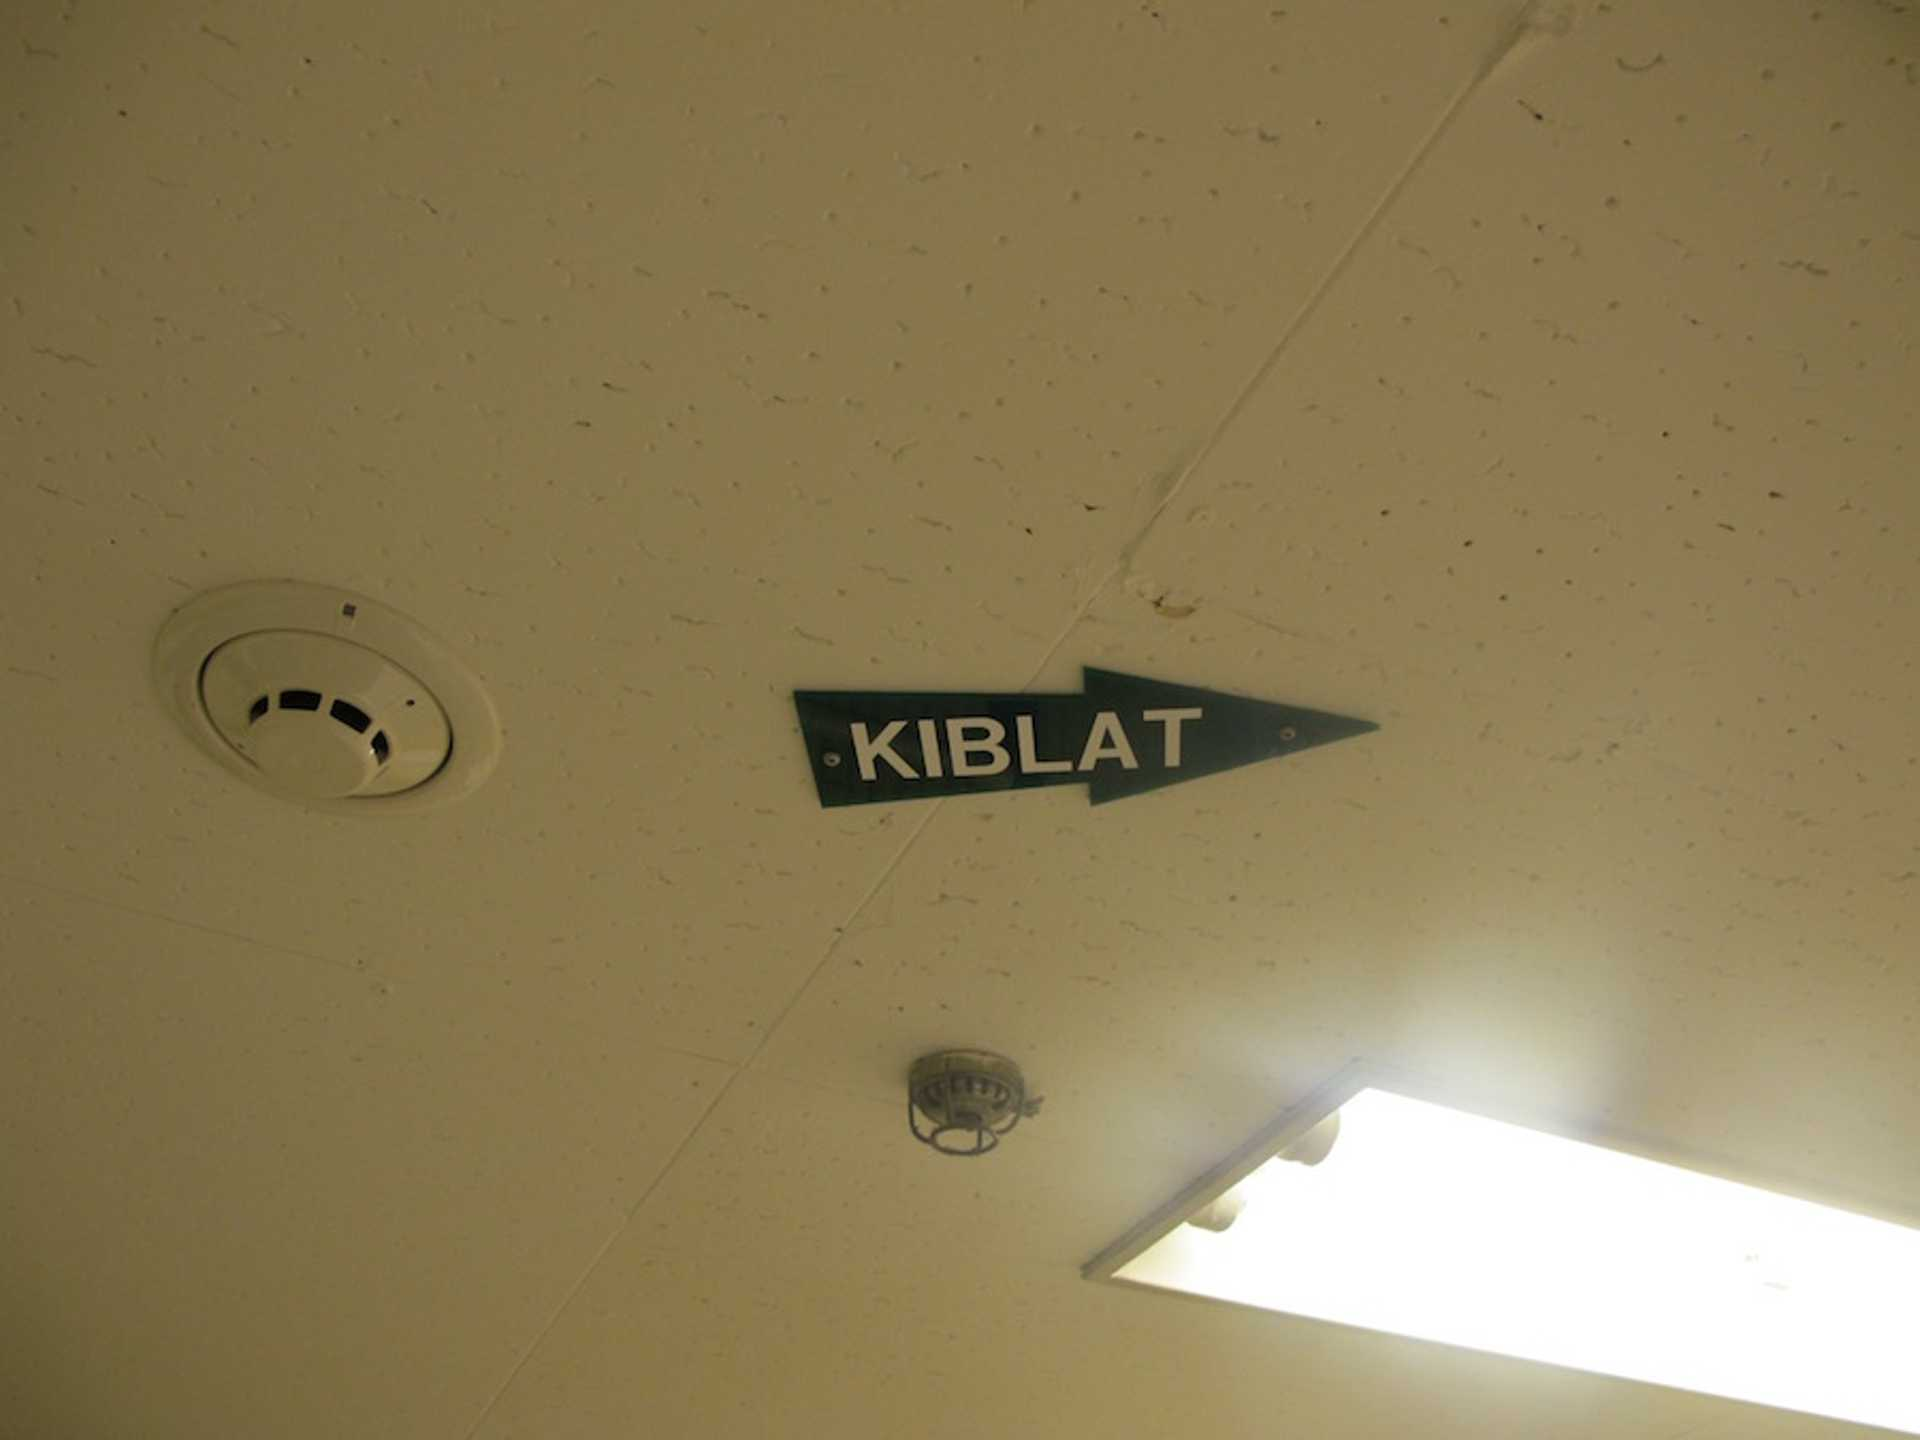 Direction of the kiblat.